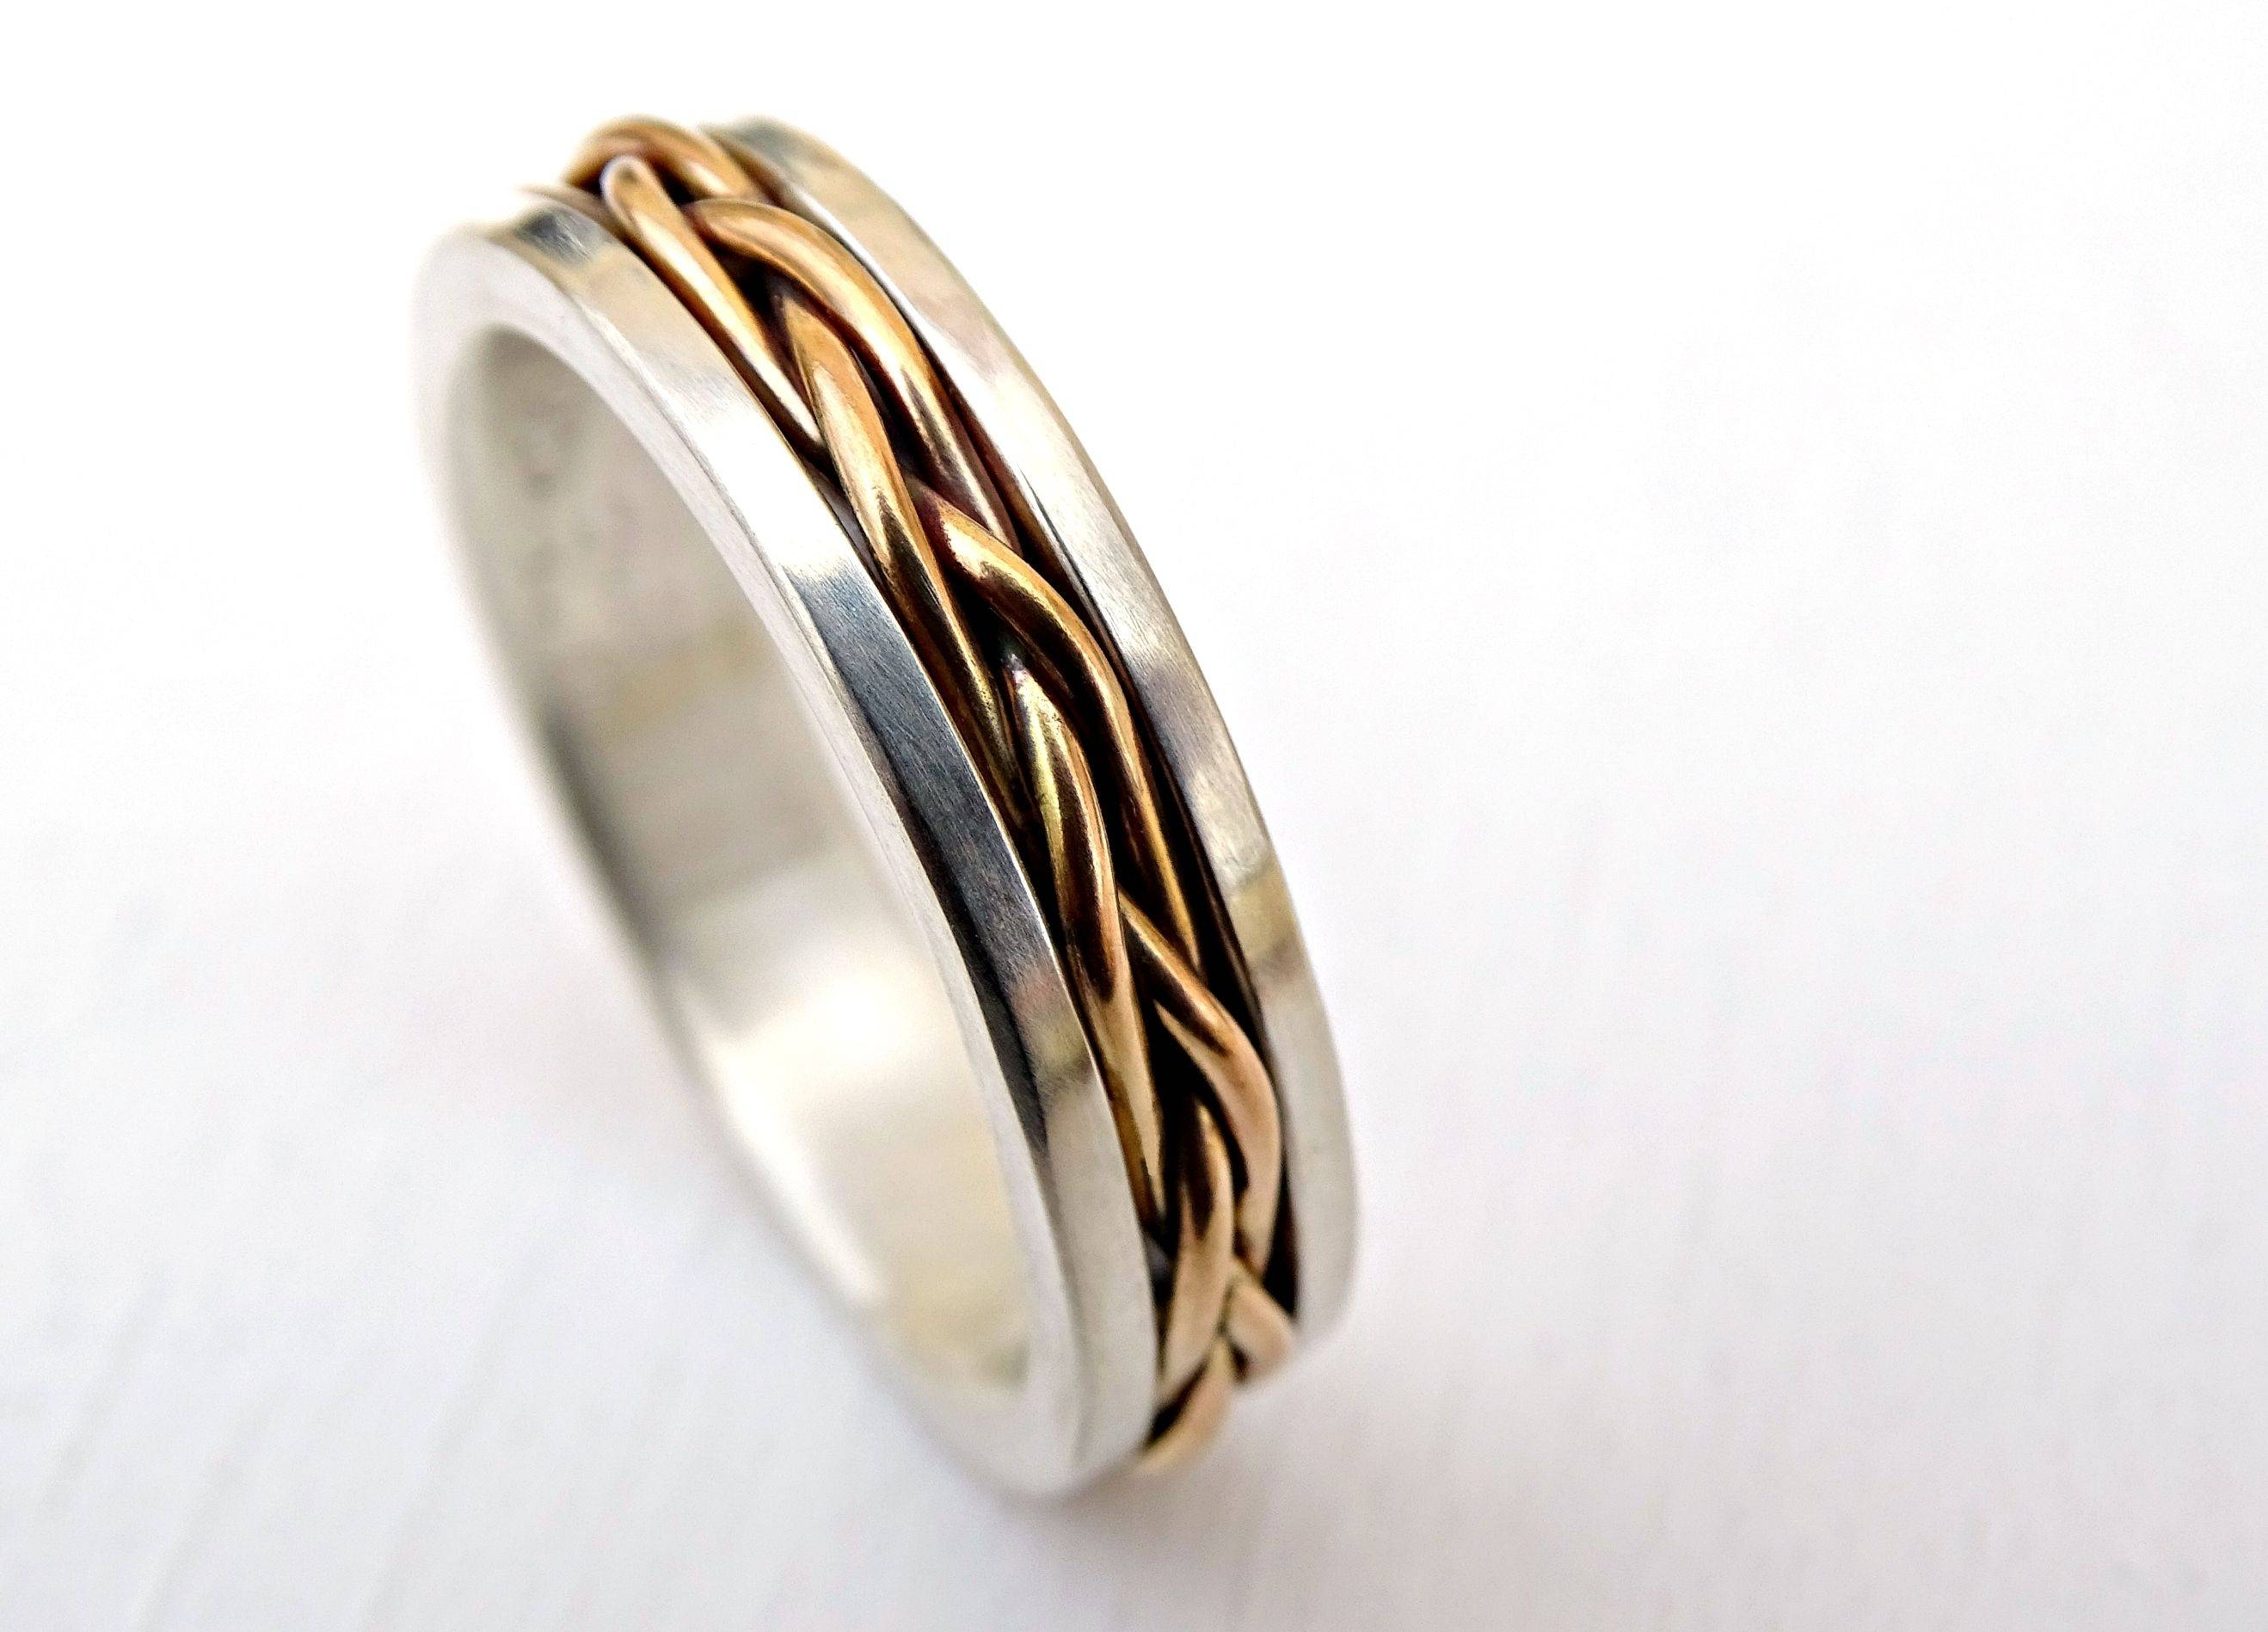 Buy A Custom Made Celtic Wedding Band Men, Gold Braided Wedding Intended For Mens Celtic Wedding Rings (View 4 of 15)